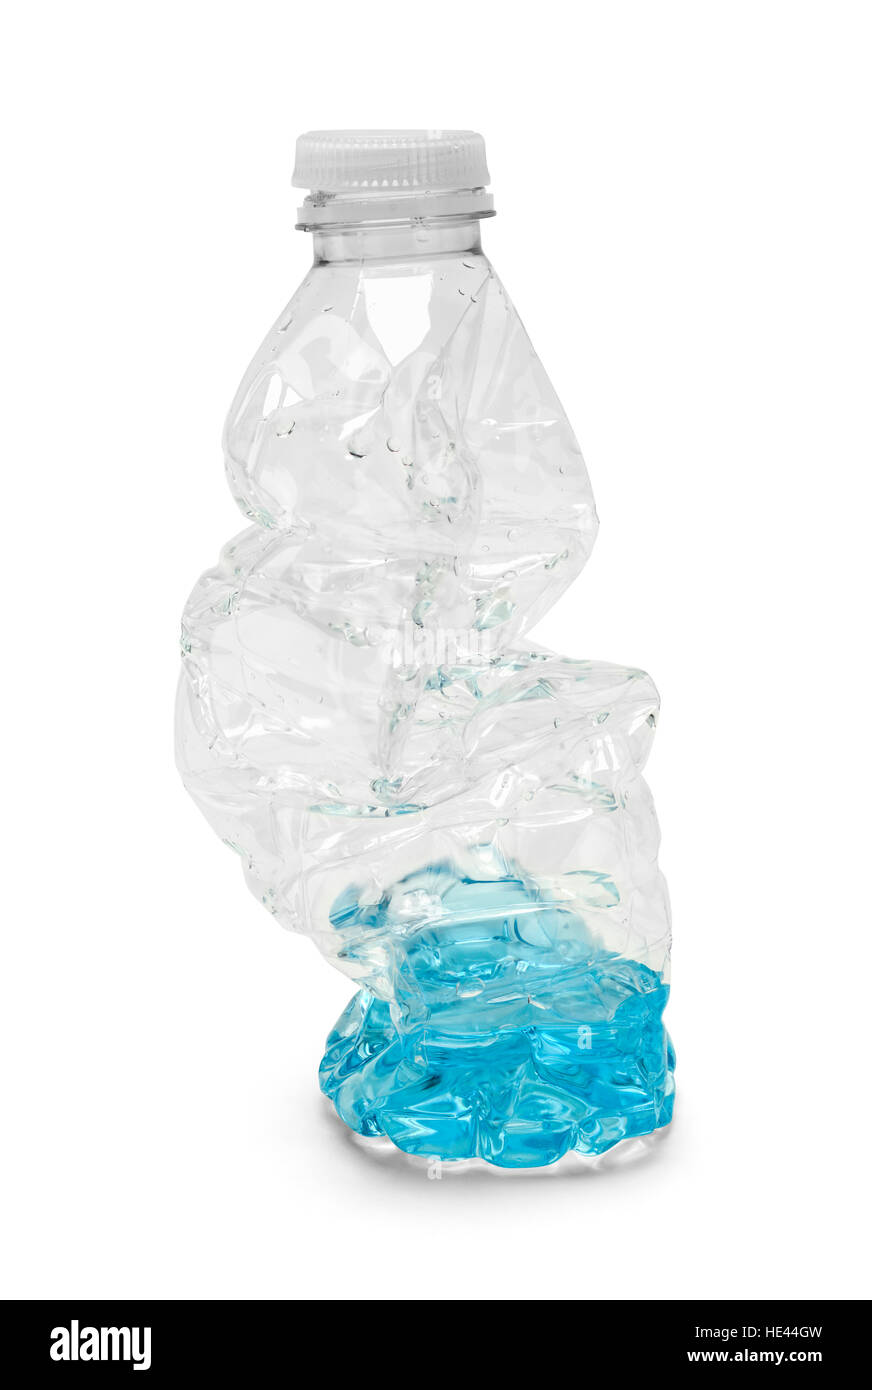 Half Empty Crushed Water Bottle Isolated on White Background. - Stock Image